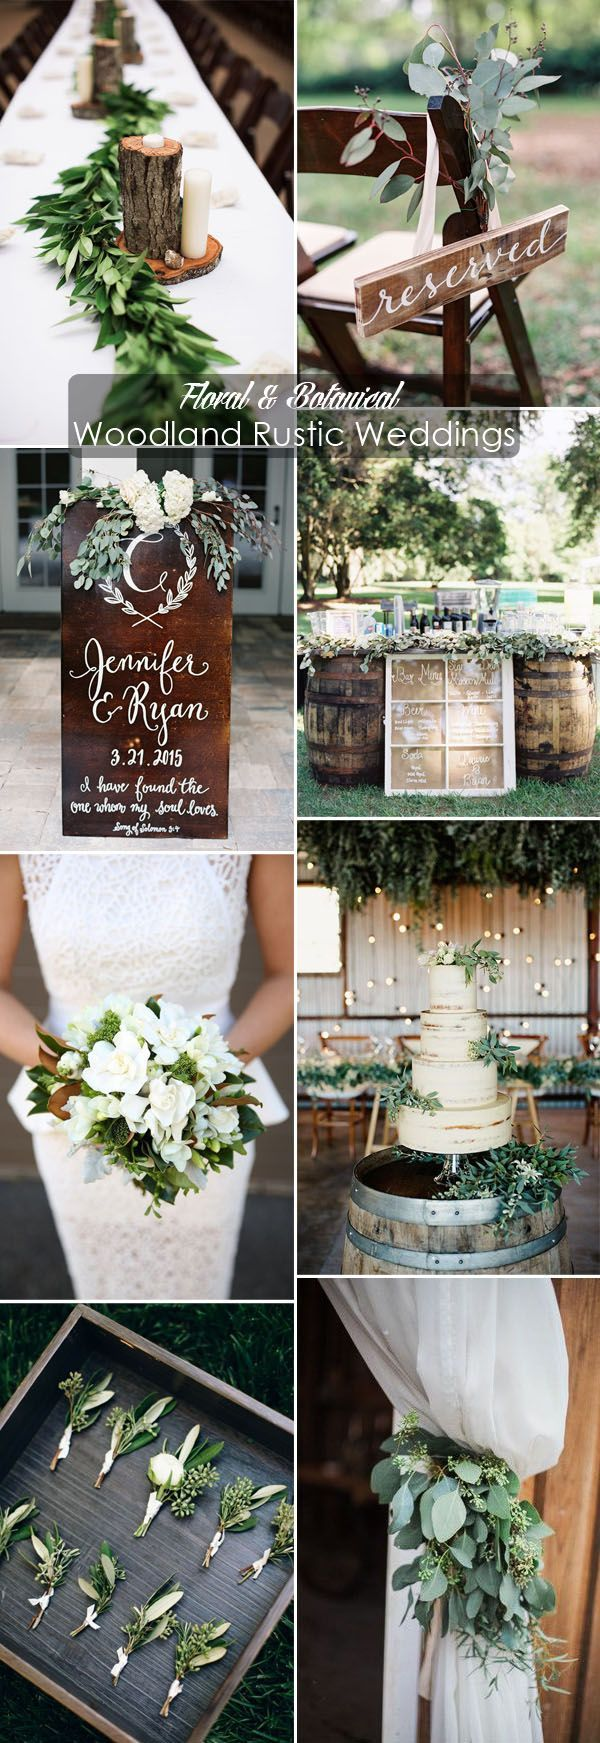 white floral and greenery organic woodland rustic wedding inspiration